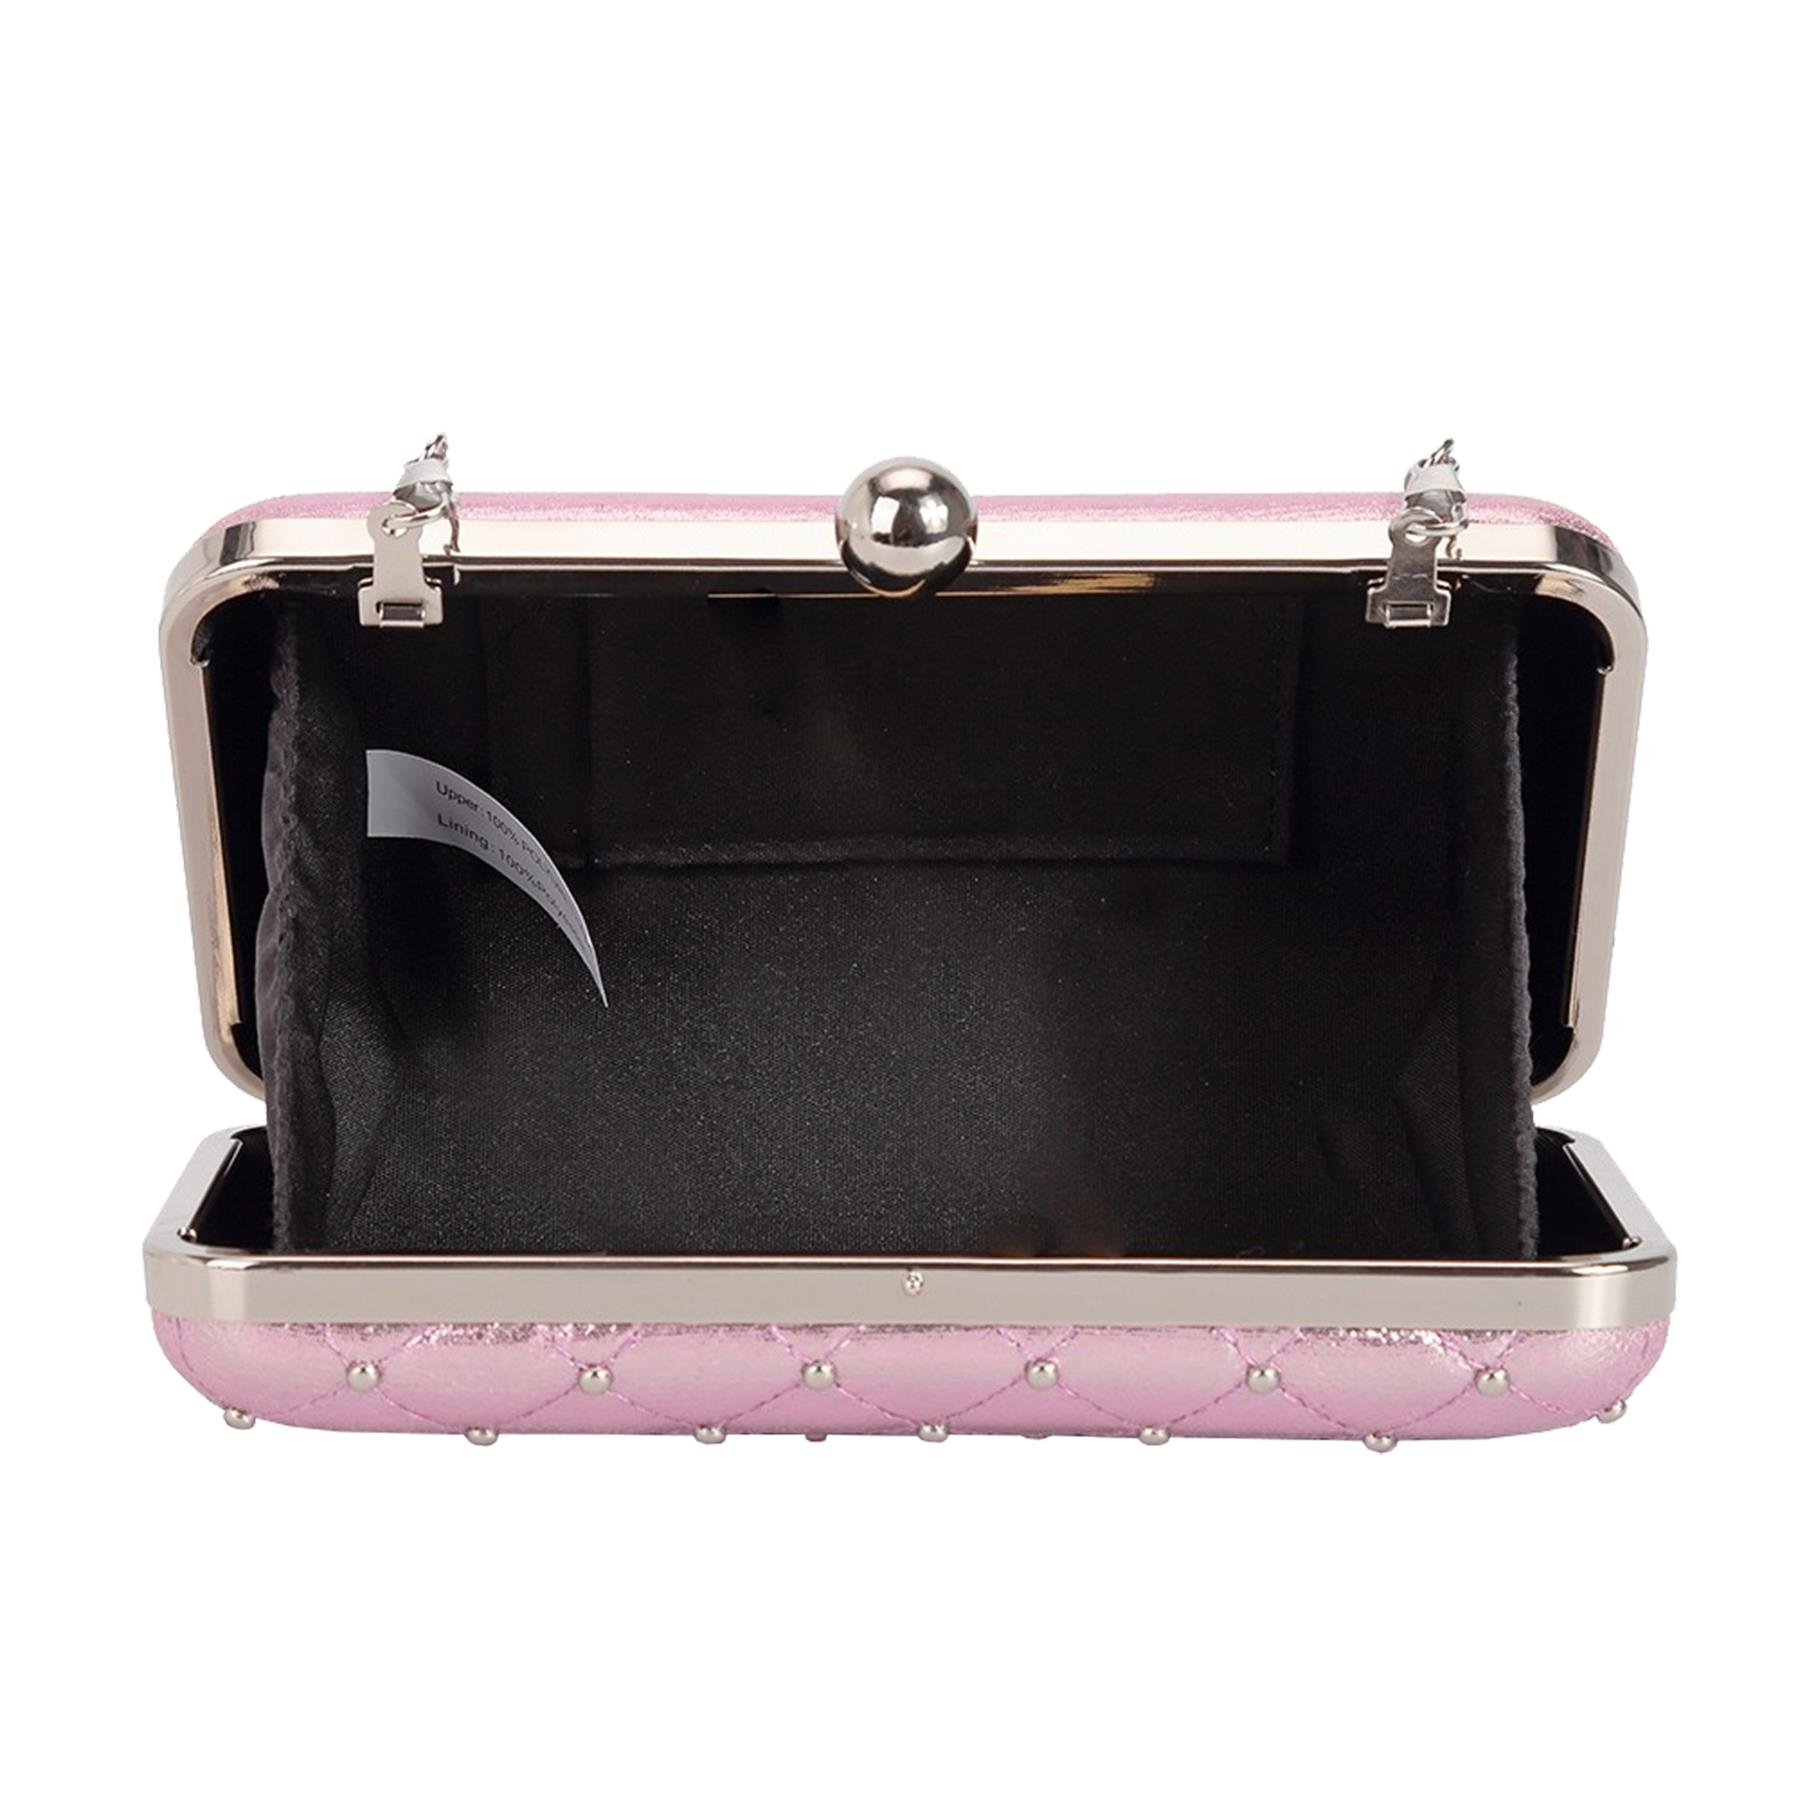 New-Women-s-Quilted-Studded-Faux-Leather-Party-Bridal-Prom-Box-Clutch-Bag thumbnail 10